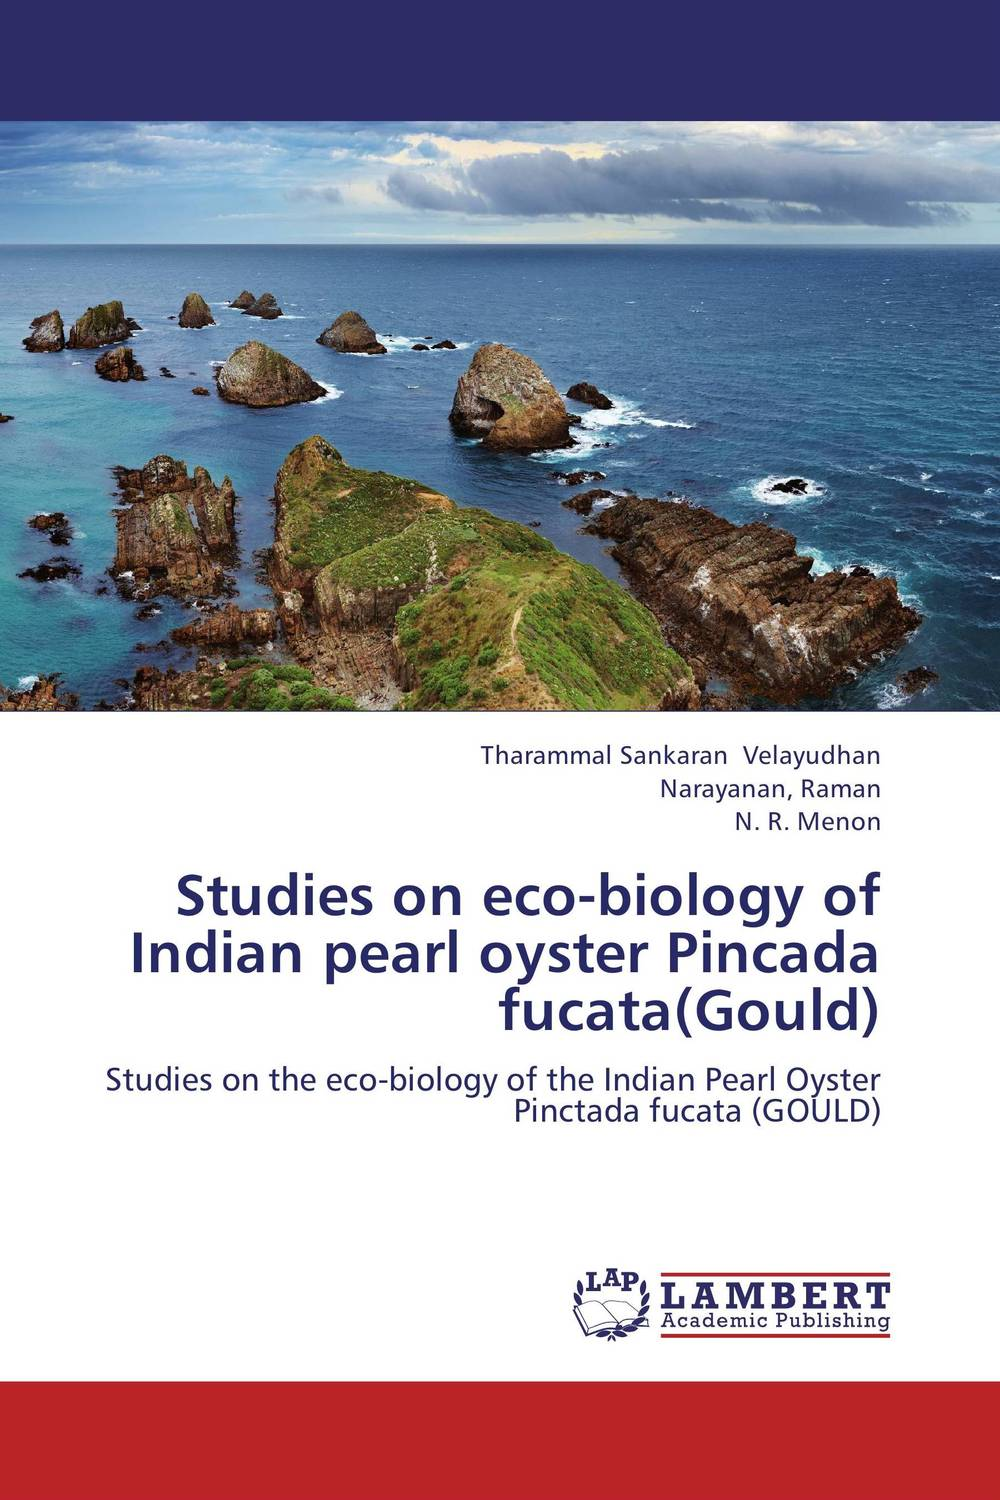 Studies on eco-biology of Indian pearl oyster Pincada fucata(Gould) bruce bridgeman the biology of behavior and mind page 11